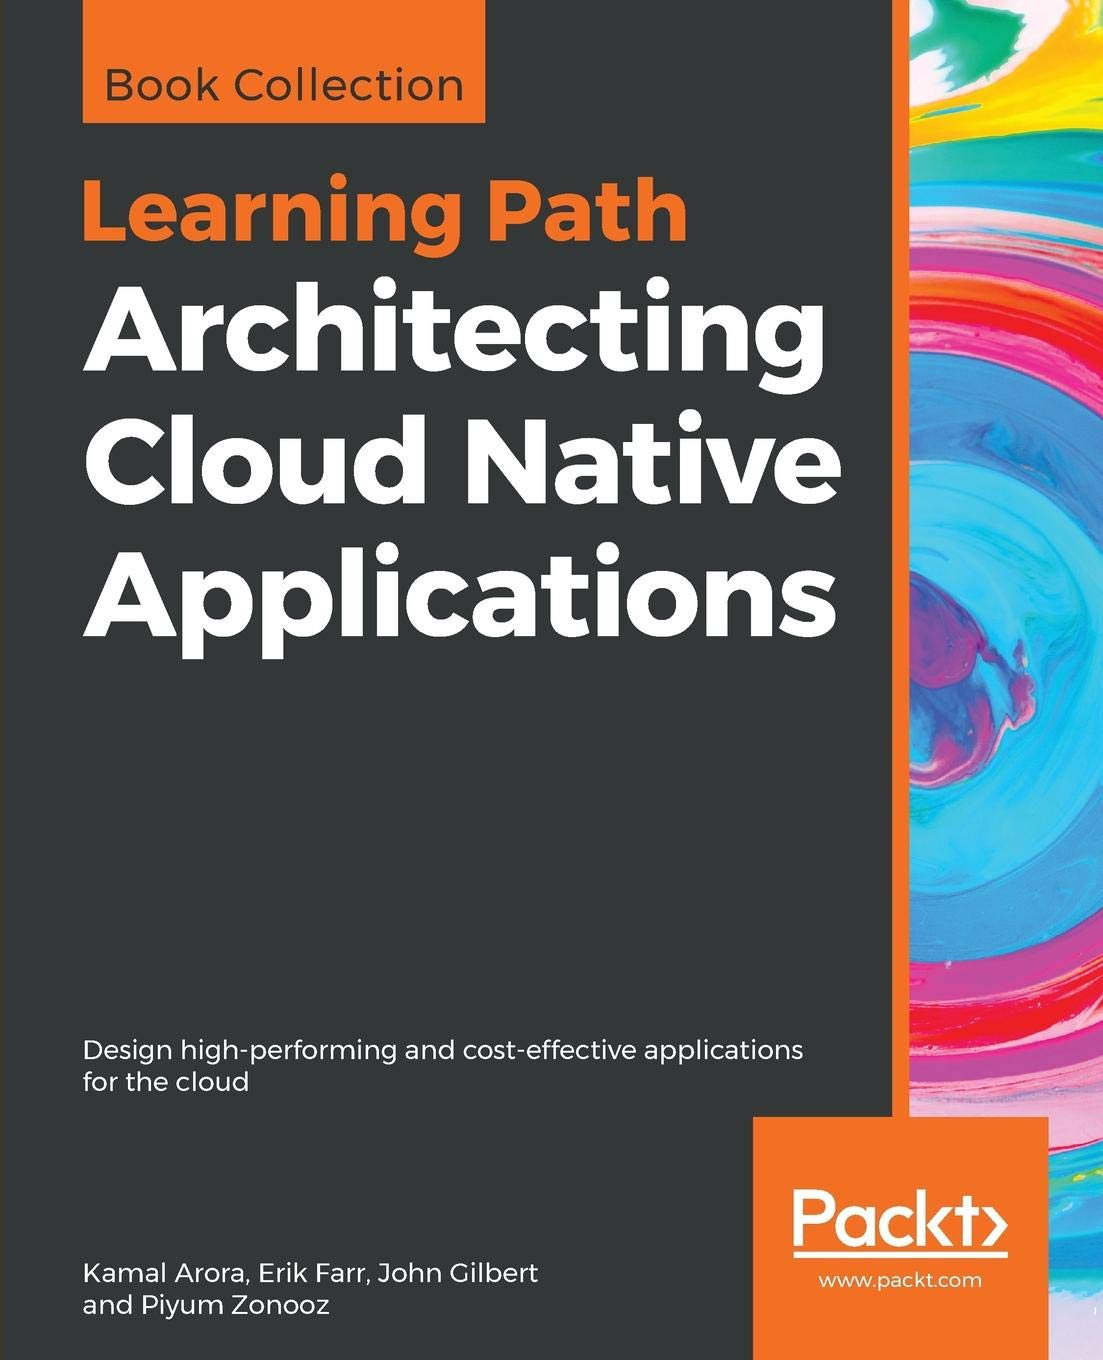 Architecting Cloud Native Applications: Design high-performing and cost-effective applications for the cloud